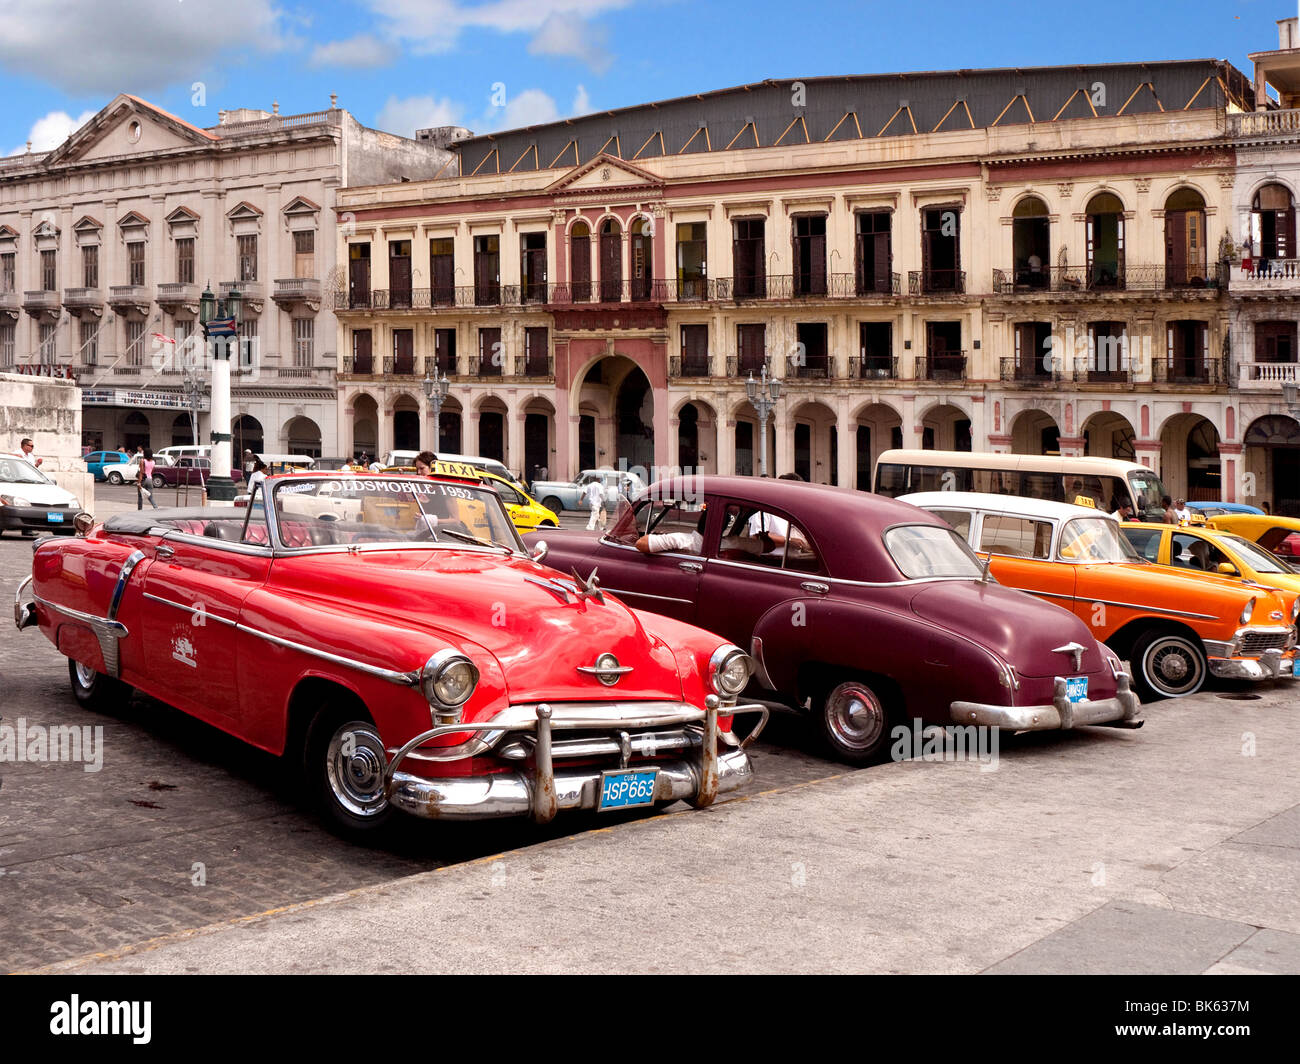 1950s american cars in havana old city havana cuba stock photo royalty free image 29023112. Black Bedroom Furniture Sets. Home Design Ideas